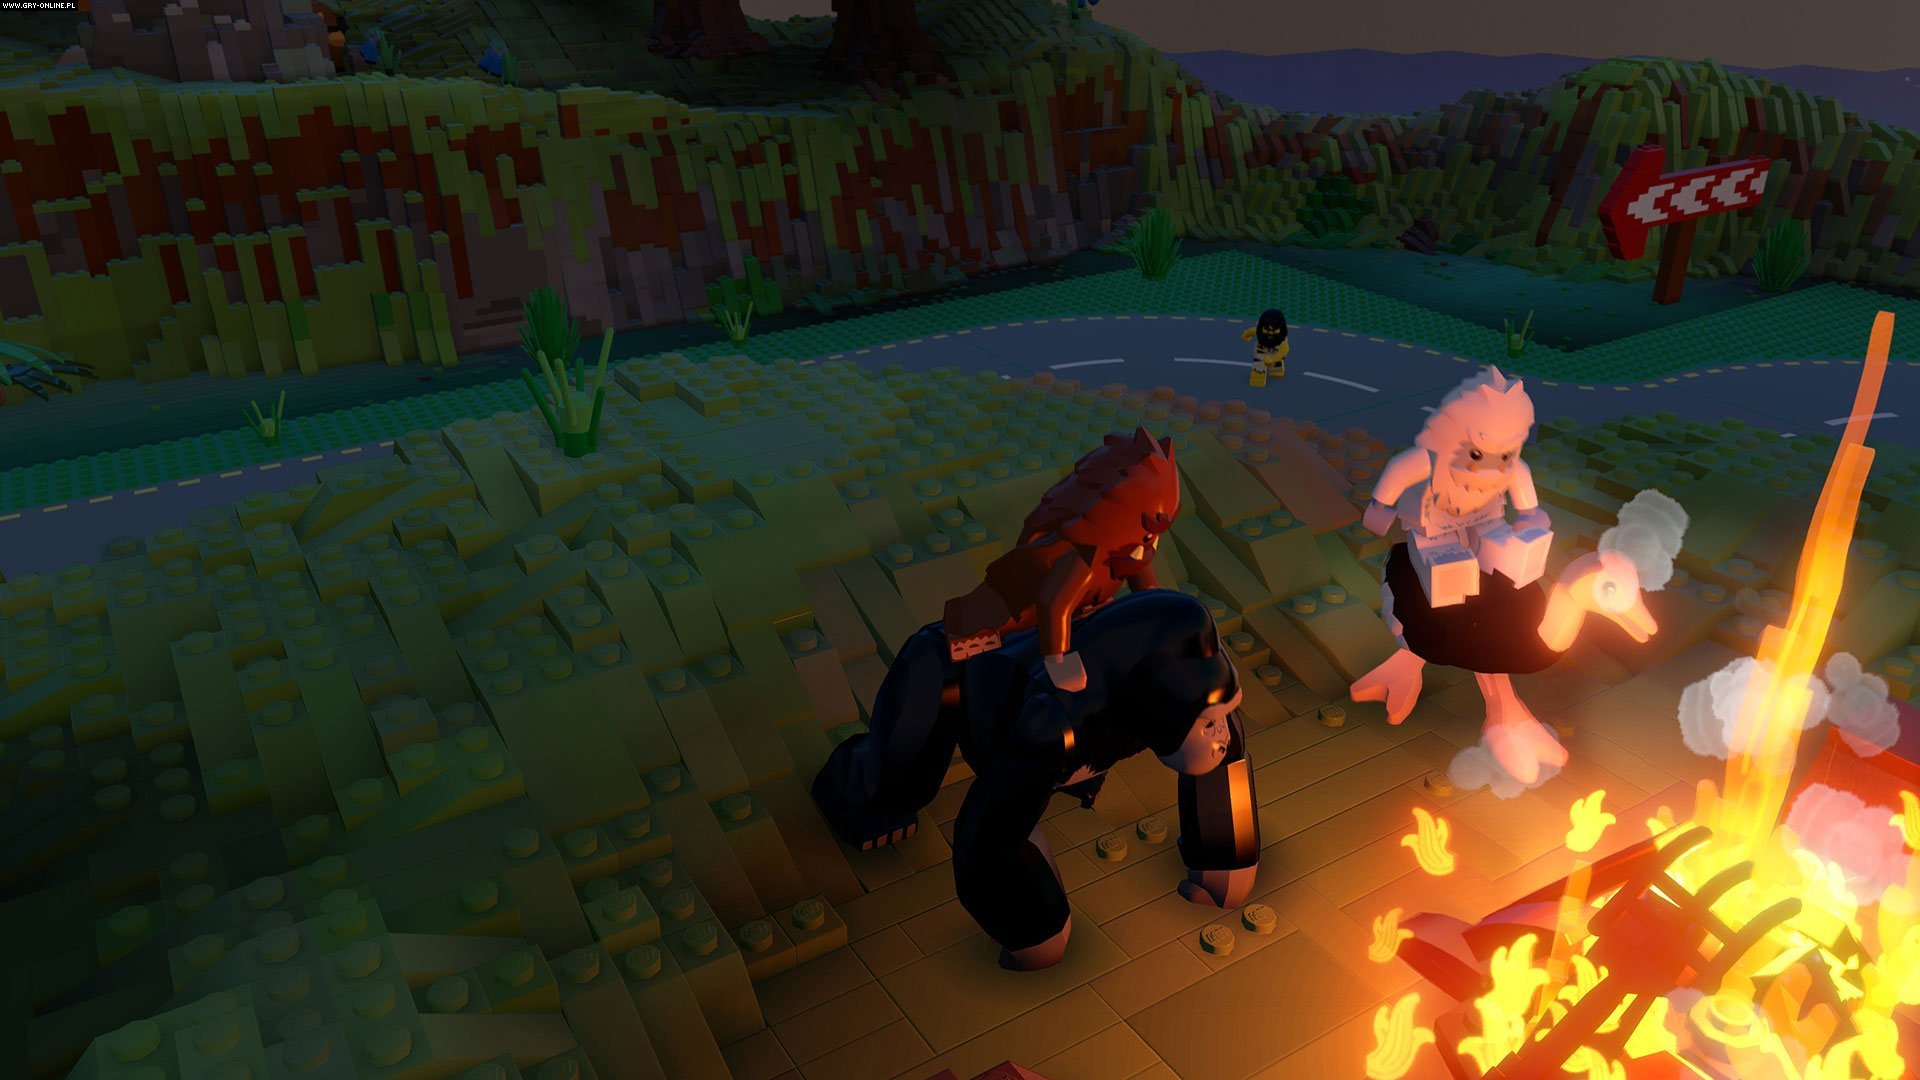 LEGO Worlds PC, PS4, XONE Games Image 1/21, Traveller's Tales, Warner Bros. Interactive Entertainment